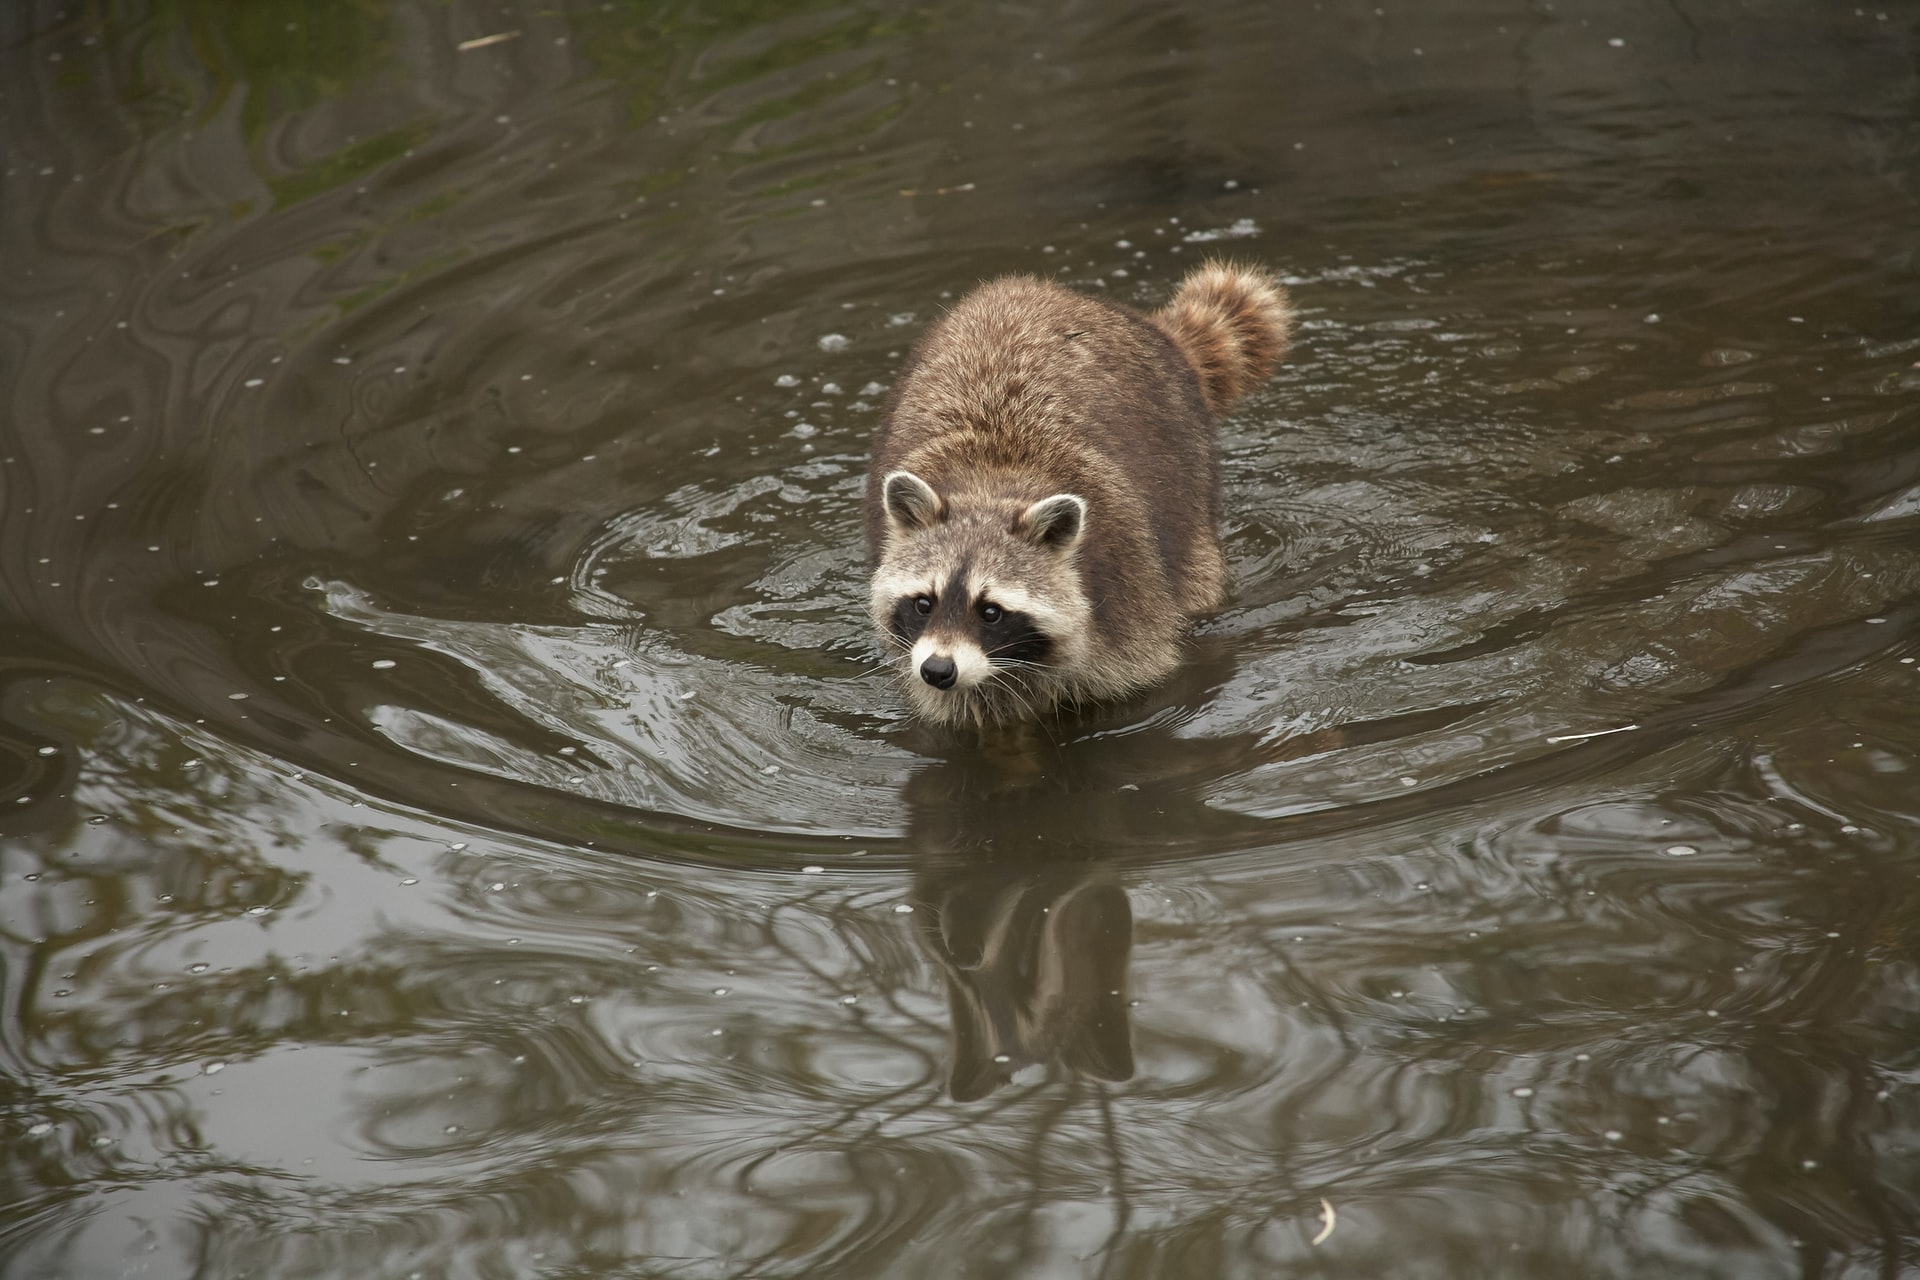 Raccoon swimming in water makes crawlspace cleanup necessary